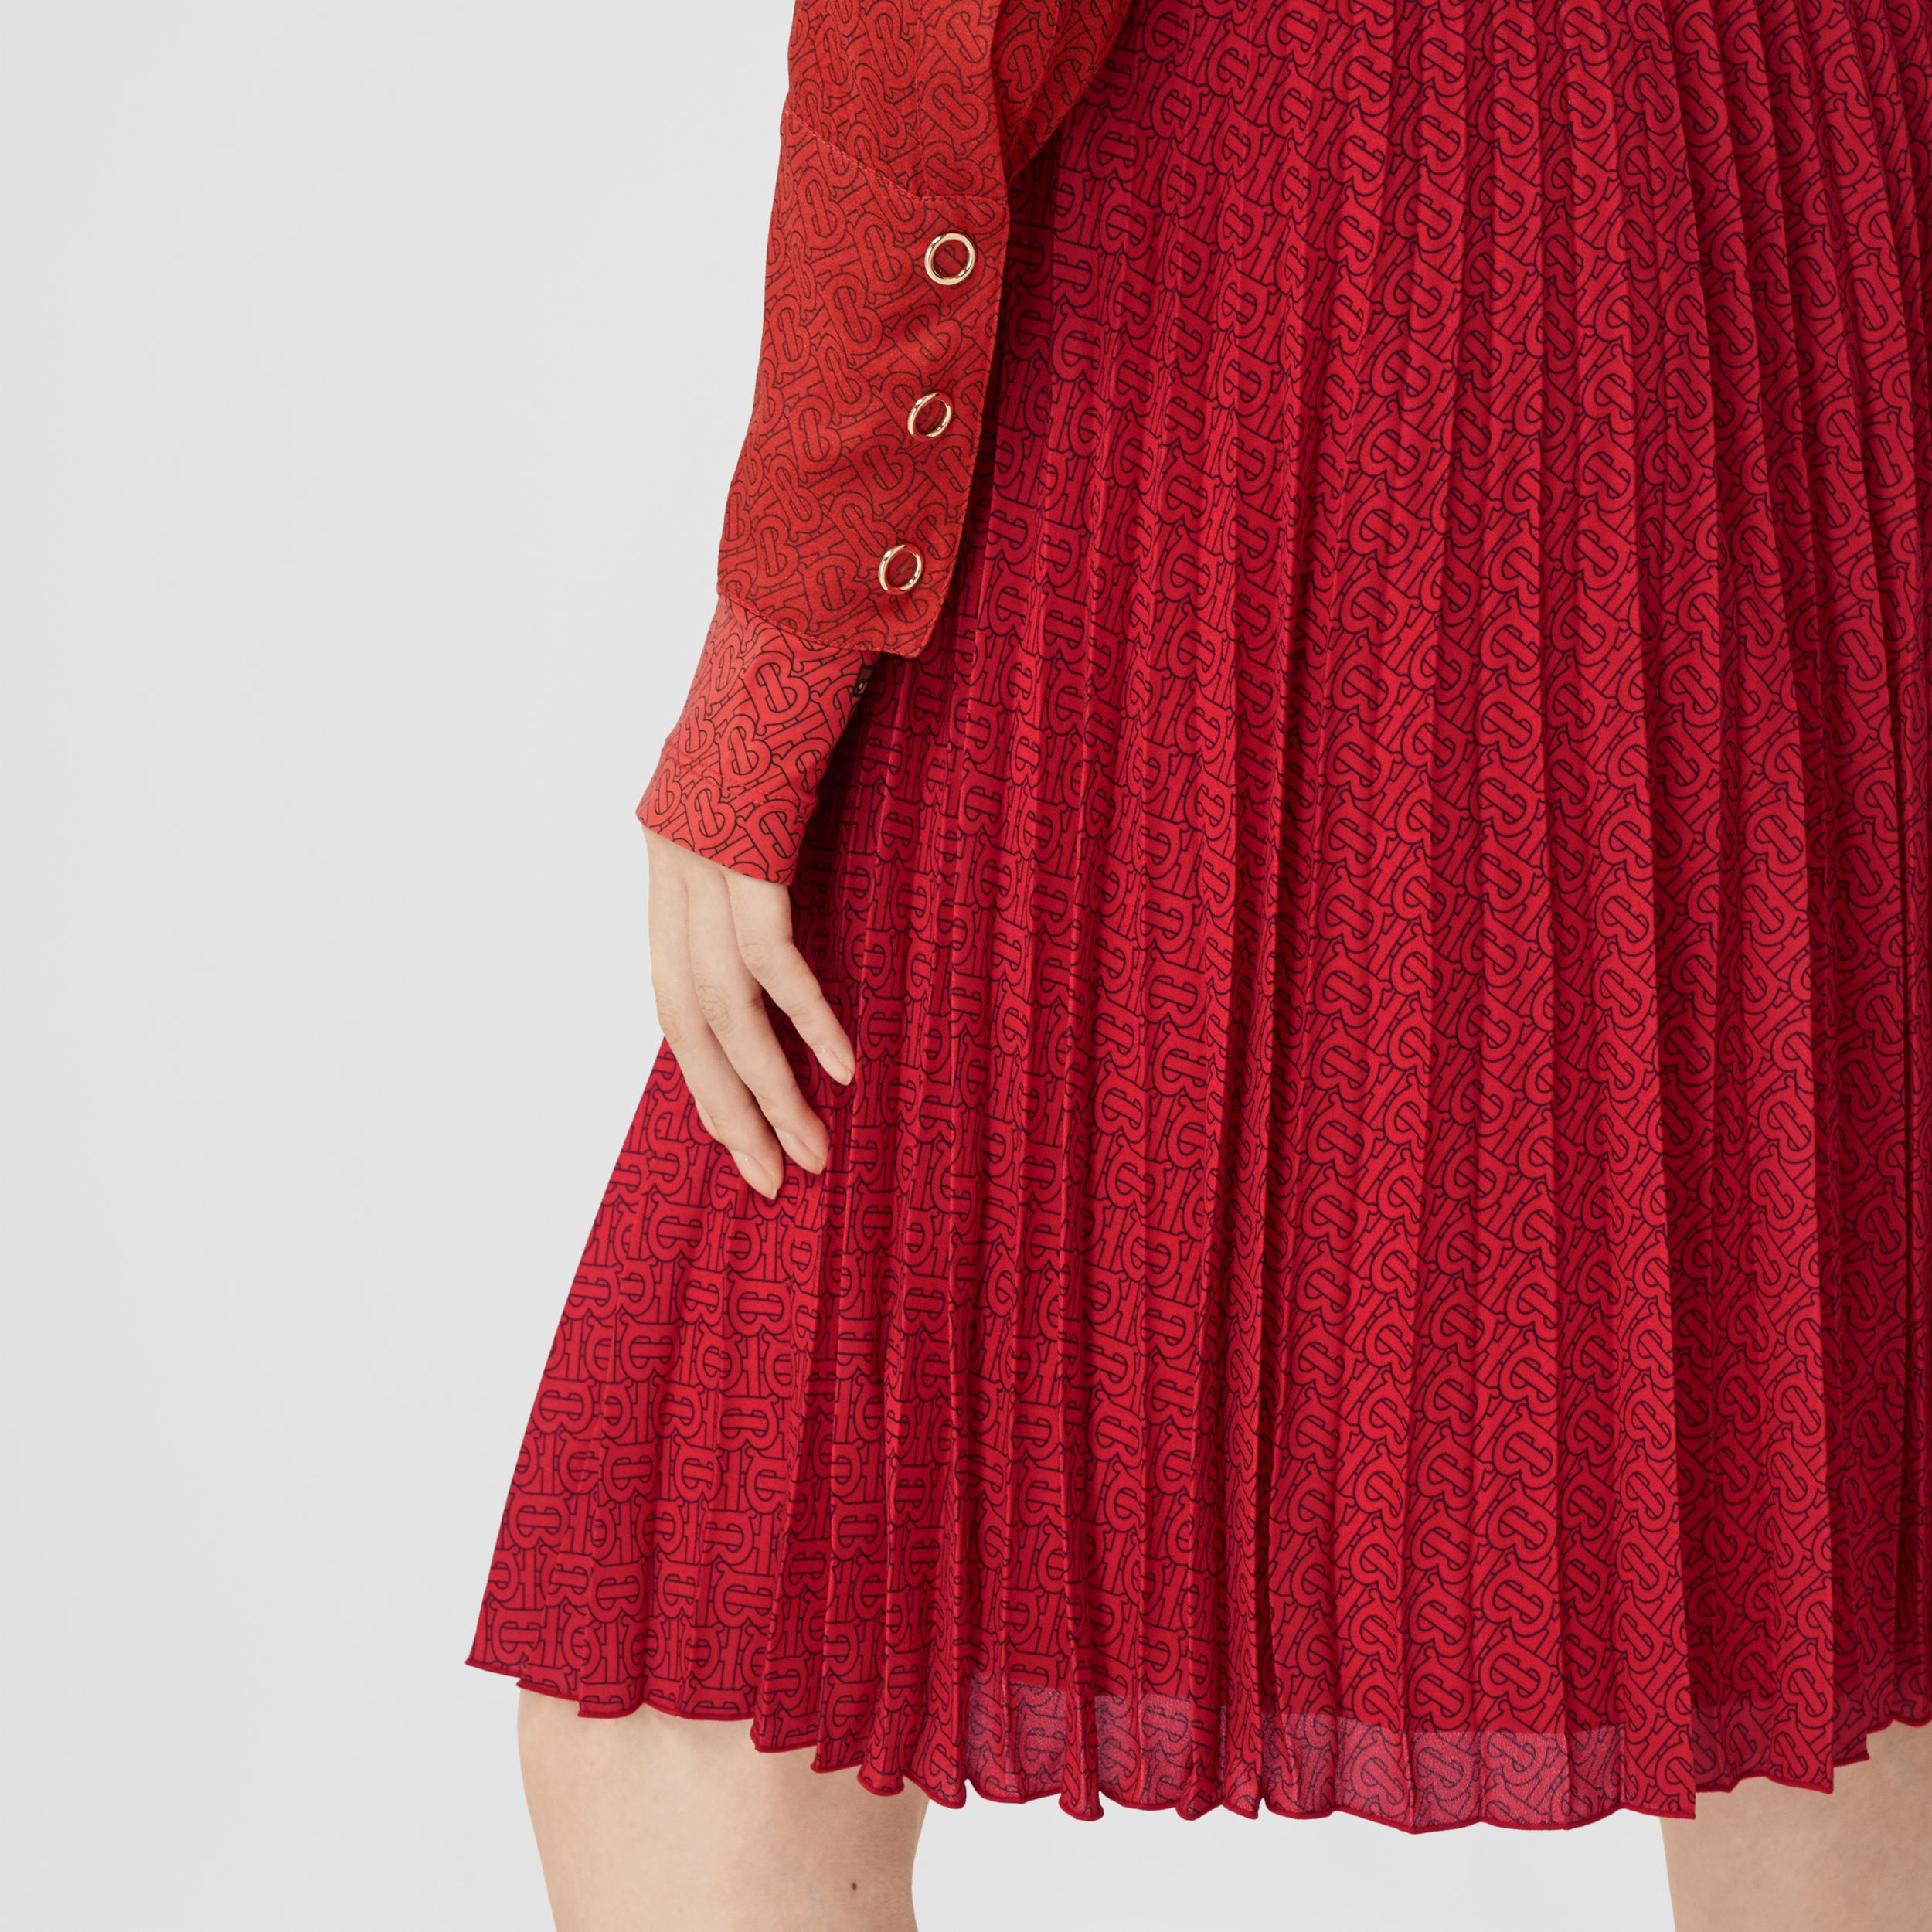 Monogram Print Pleated Skirt in Bright Red - Women | Burberry Hong Kong S.A.R. - 2